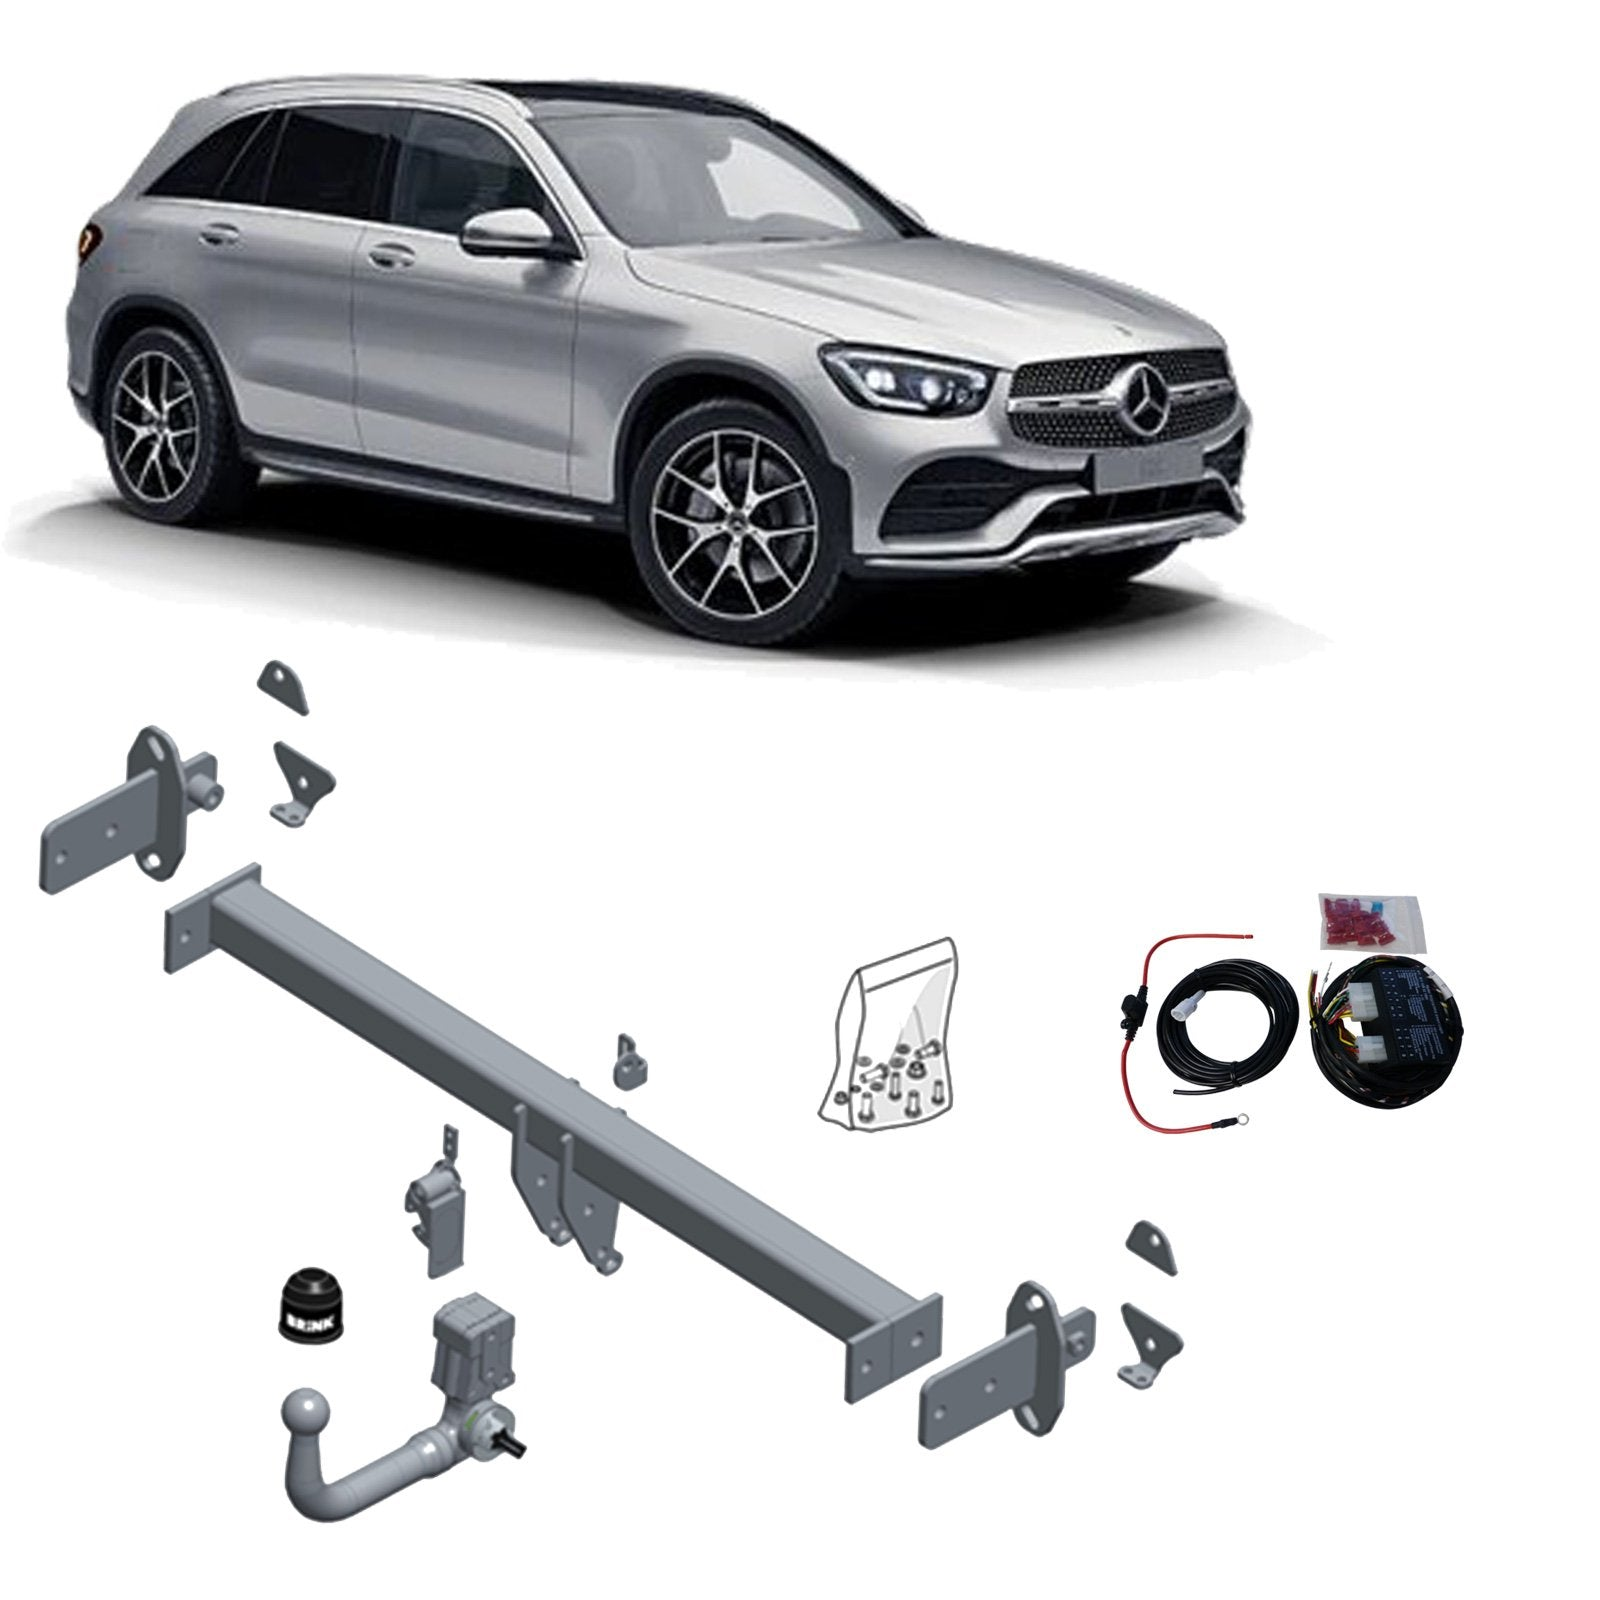 Brink Towbar to suit MERCEDES-BENZ GLC-CLASS (06/2015 - on)